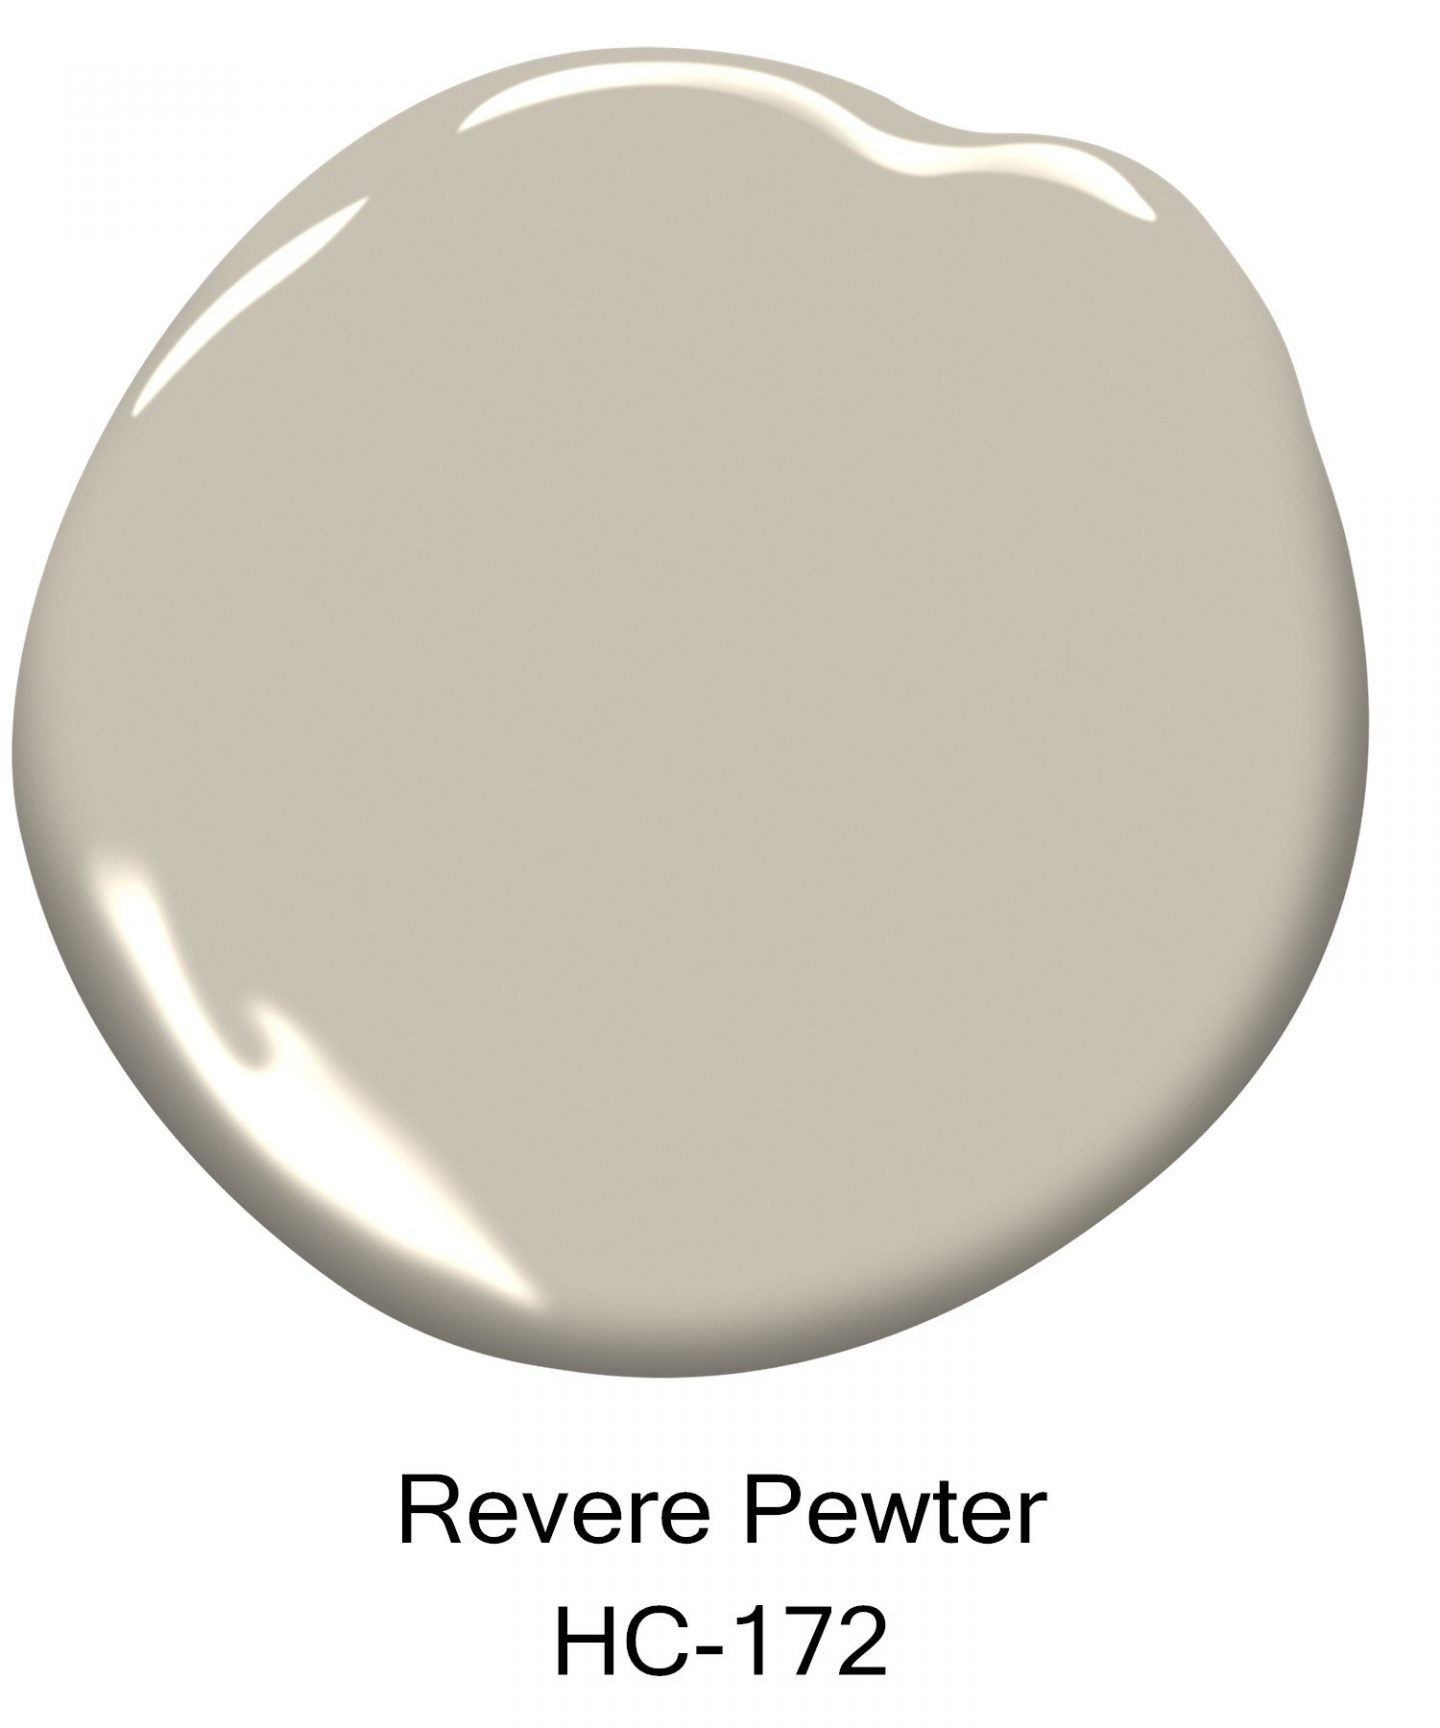 Revere Pewter by Benjamin Moore paint color.